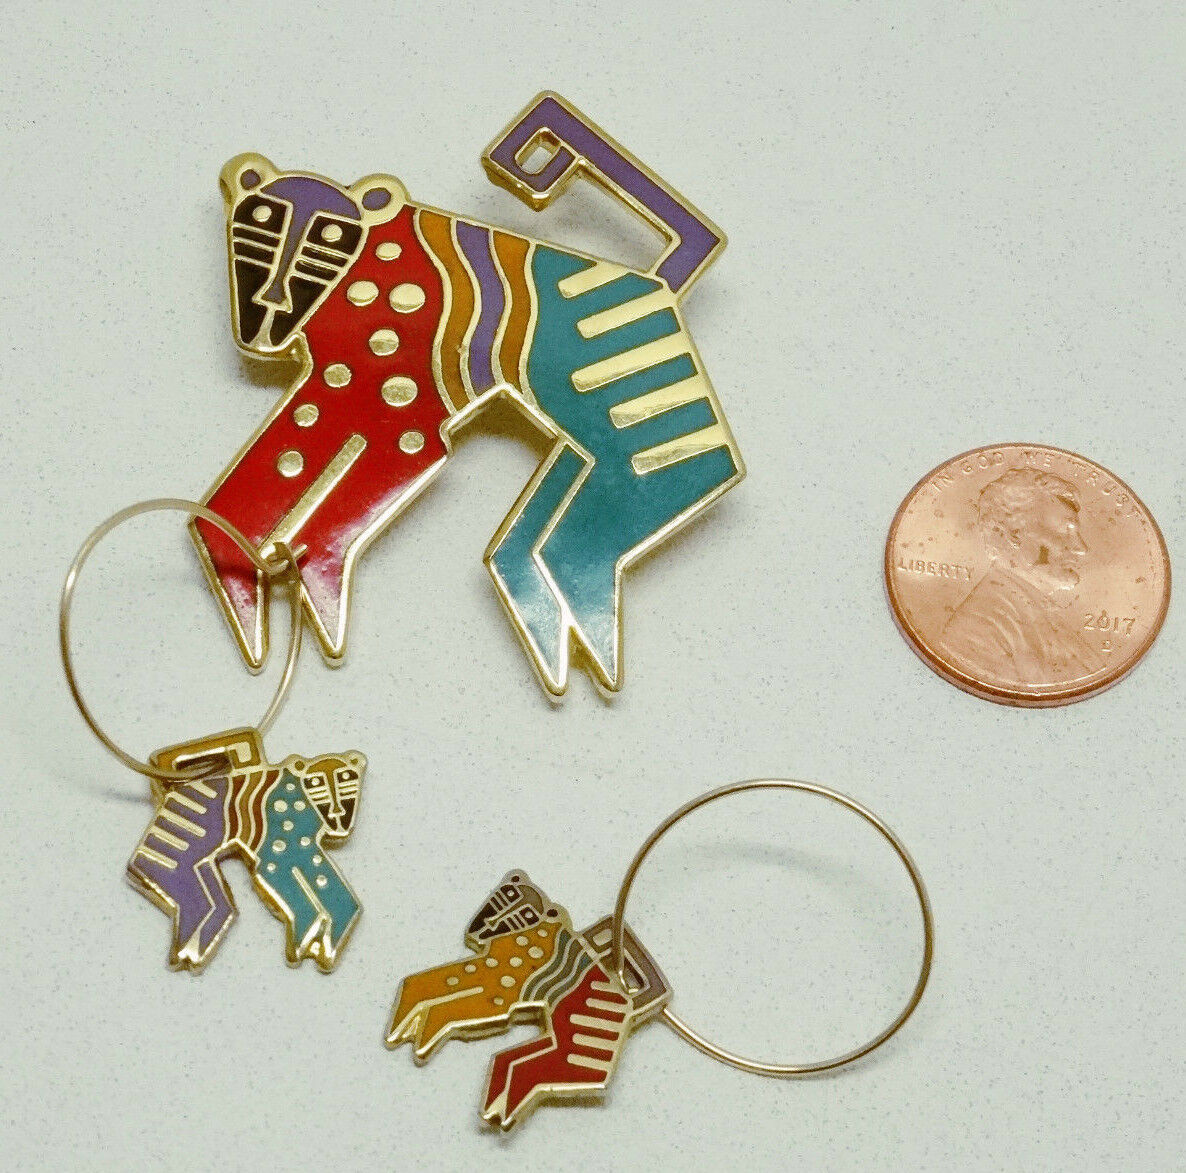 LAUREL BURCH MYTHICAL MONKEY PIN + EARRINGS  RETIRED & SIGNED - EUC